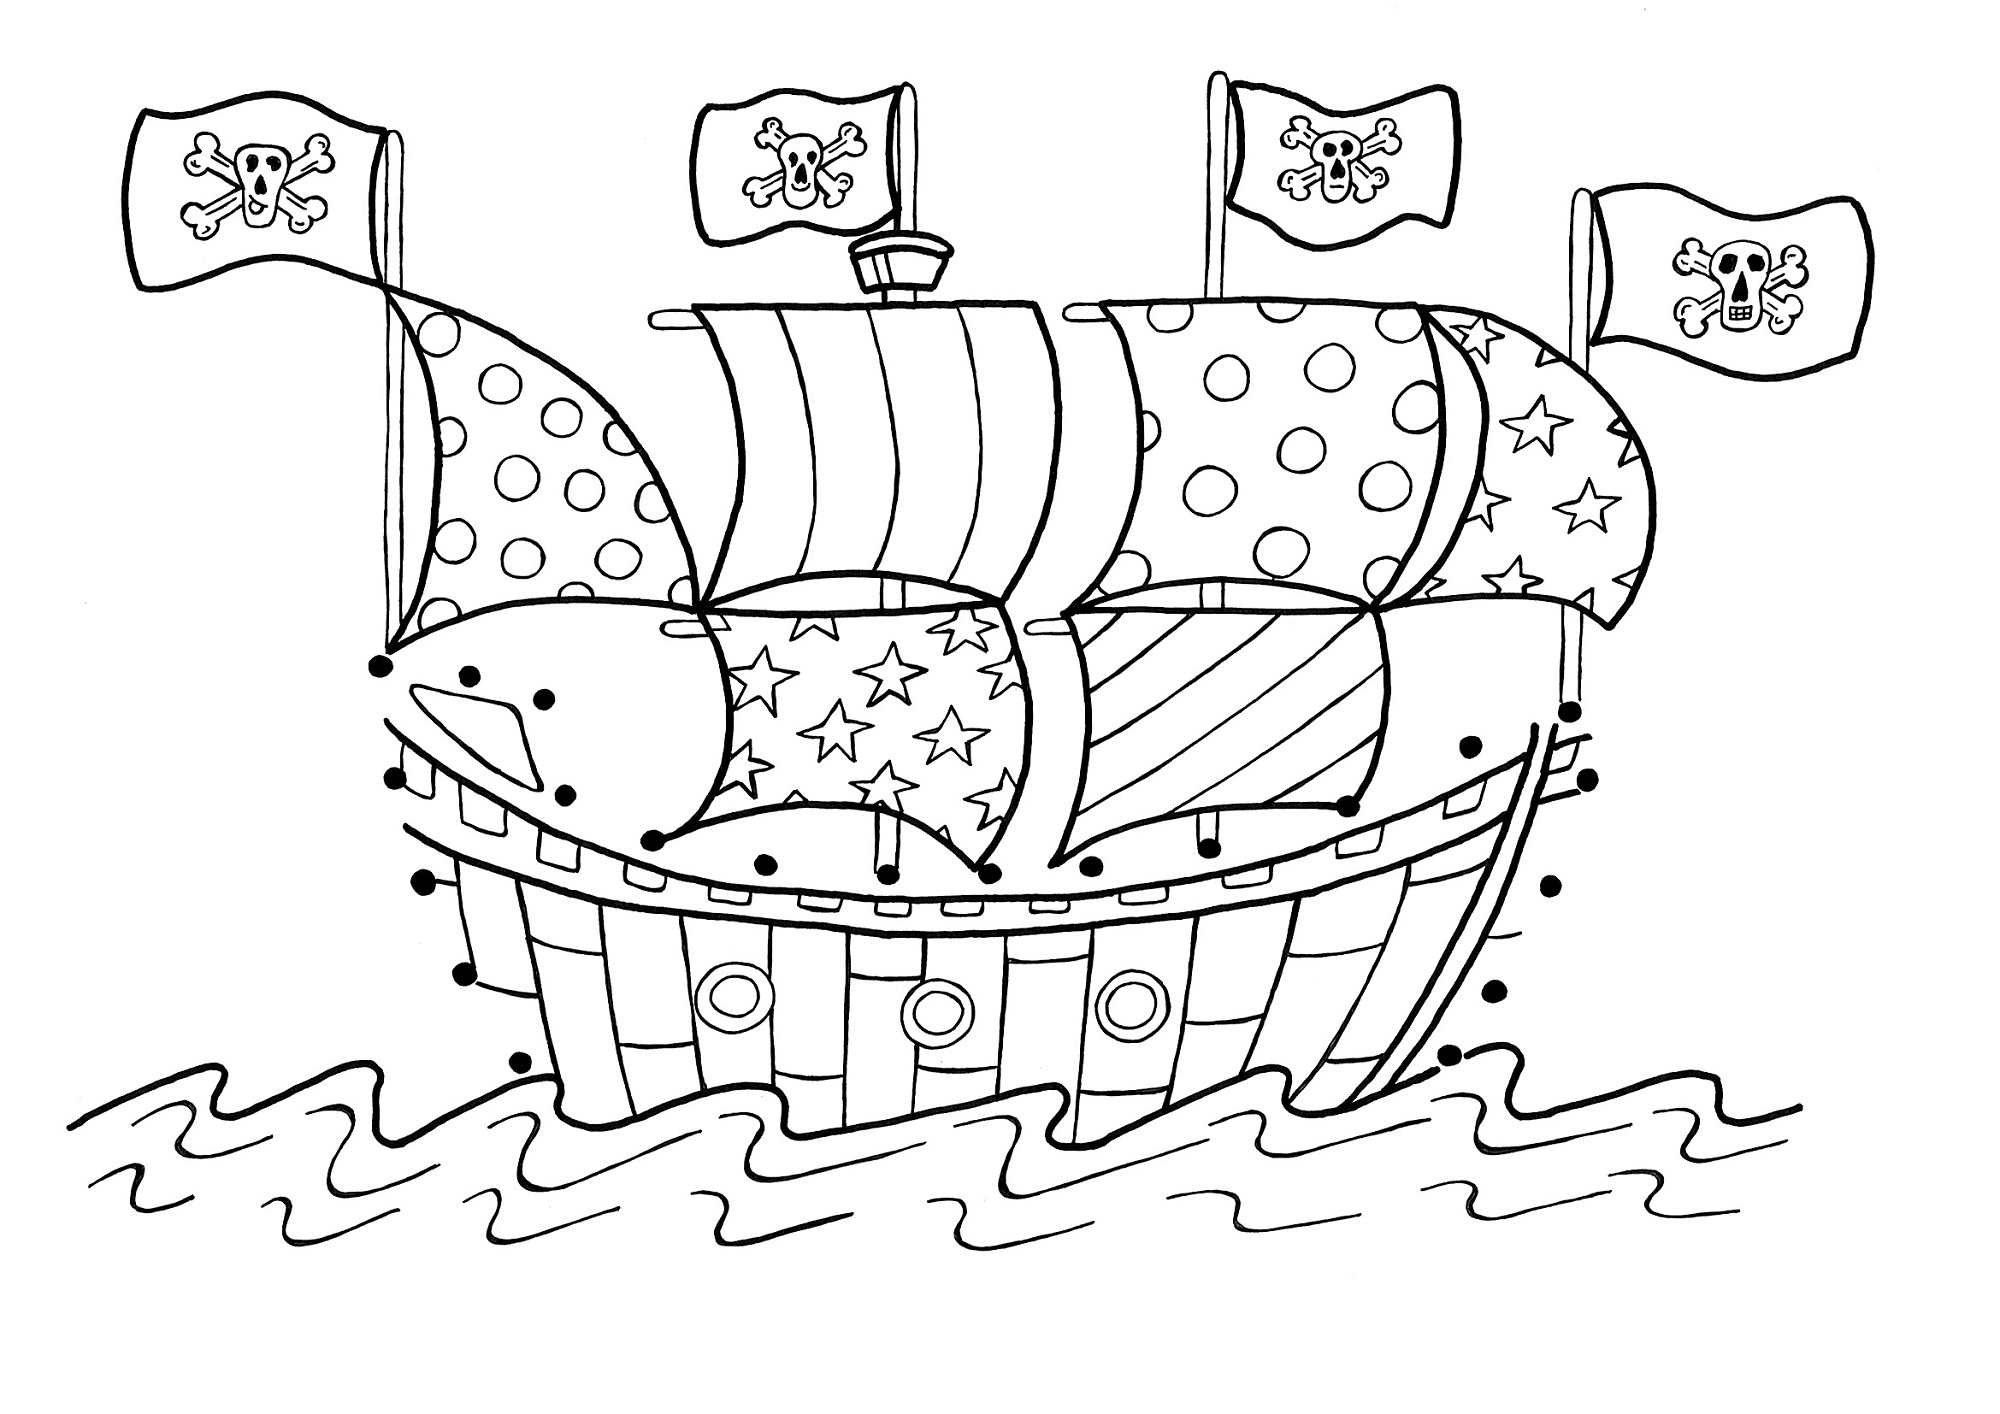 2000x1414 Pirate Ship Pictures For Kids Cute Kiddo Shelter